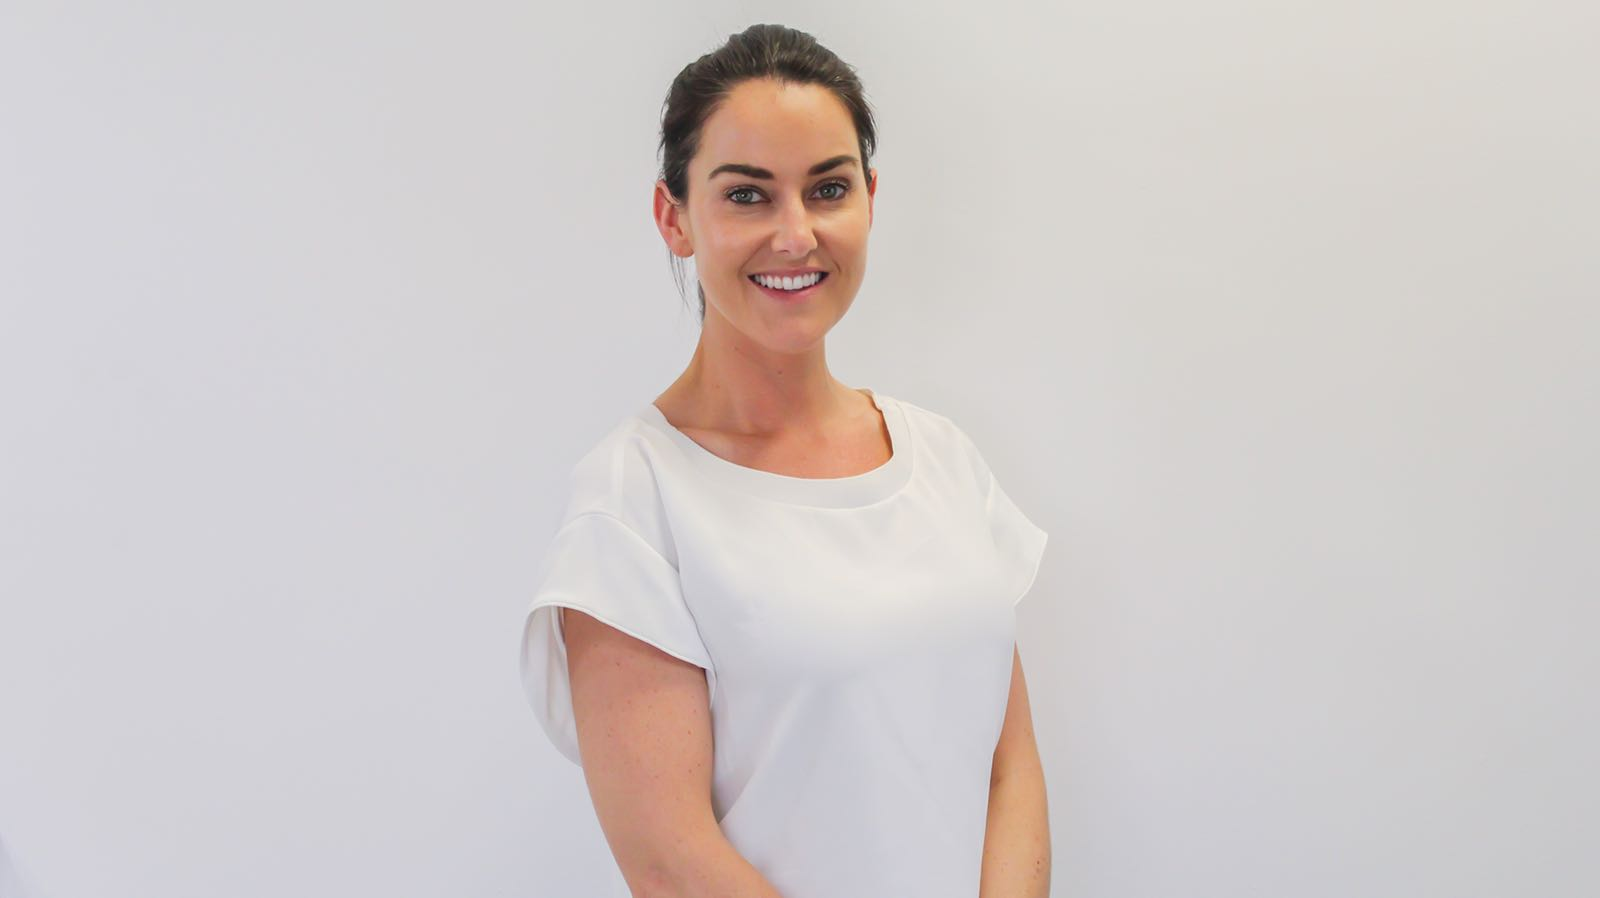 #MakeAFuss: Dr Altona Myers on aesthetics, going it alone and saying 'no' to clients